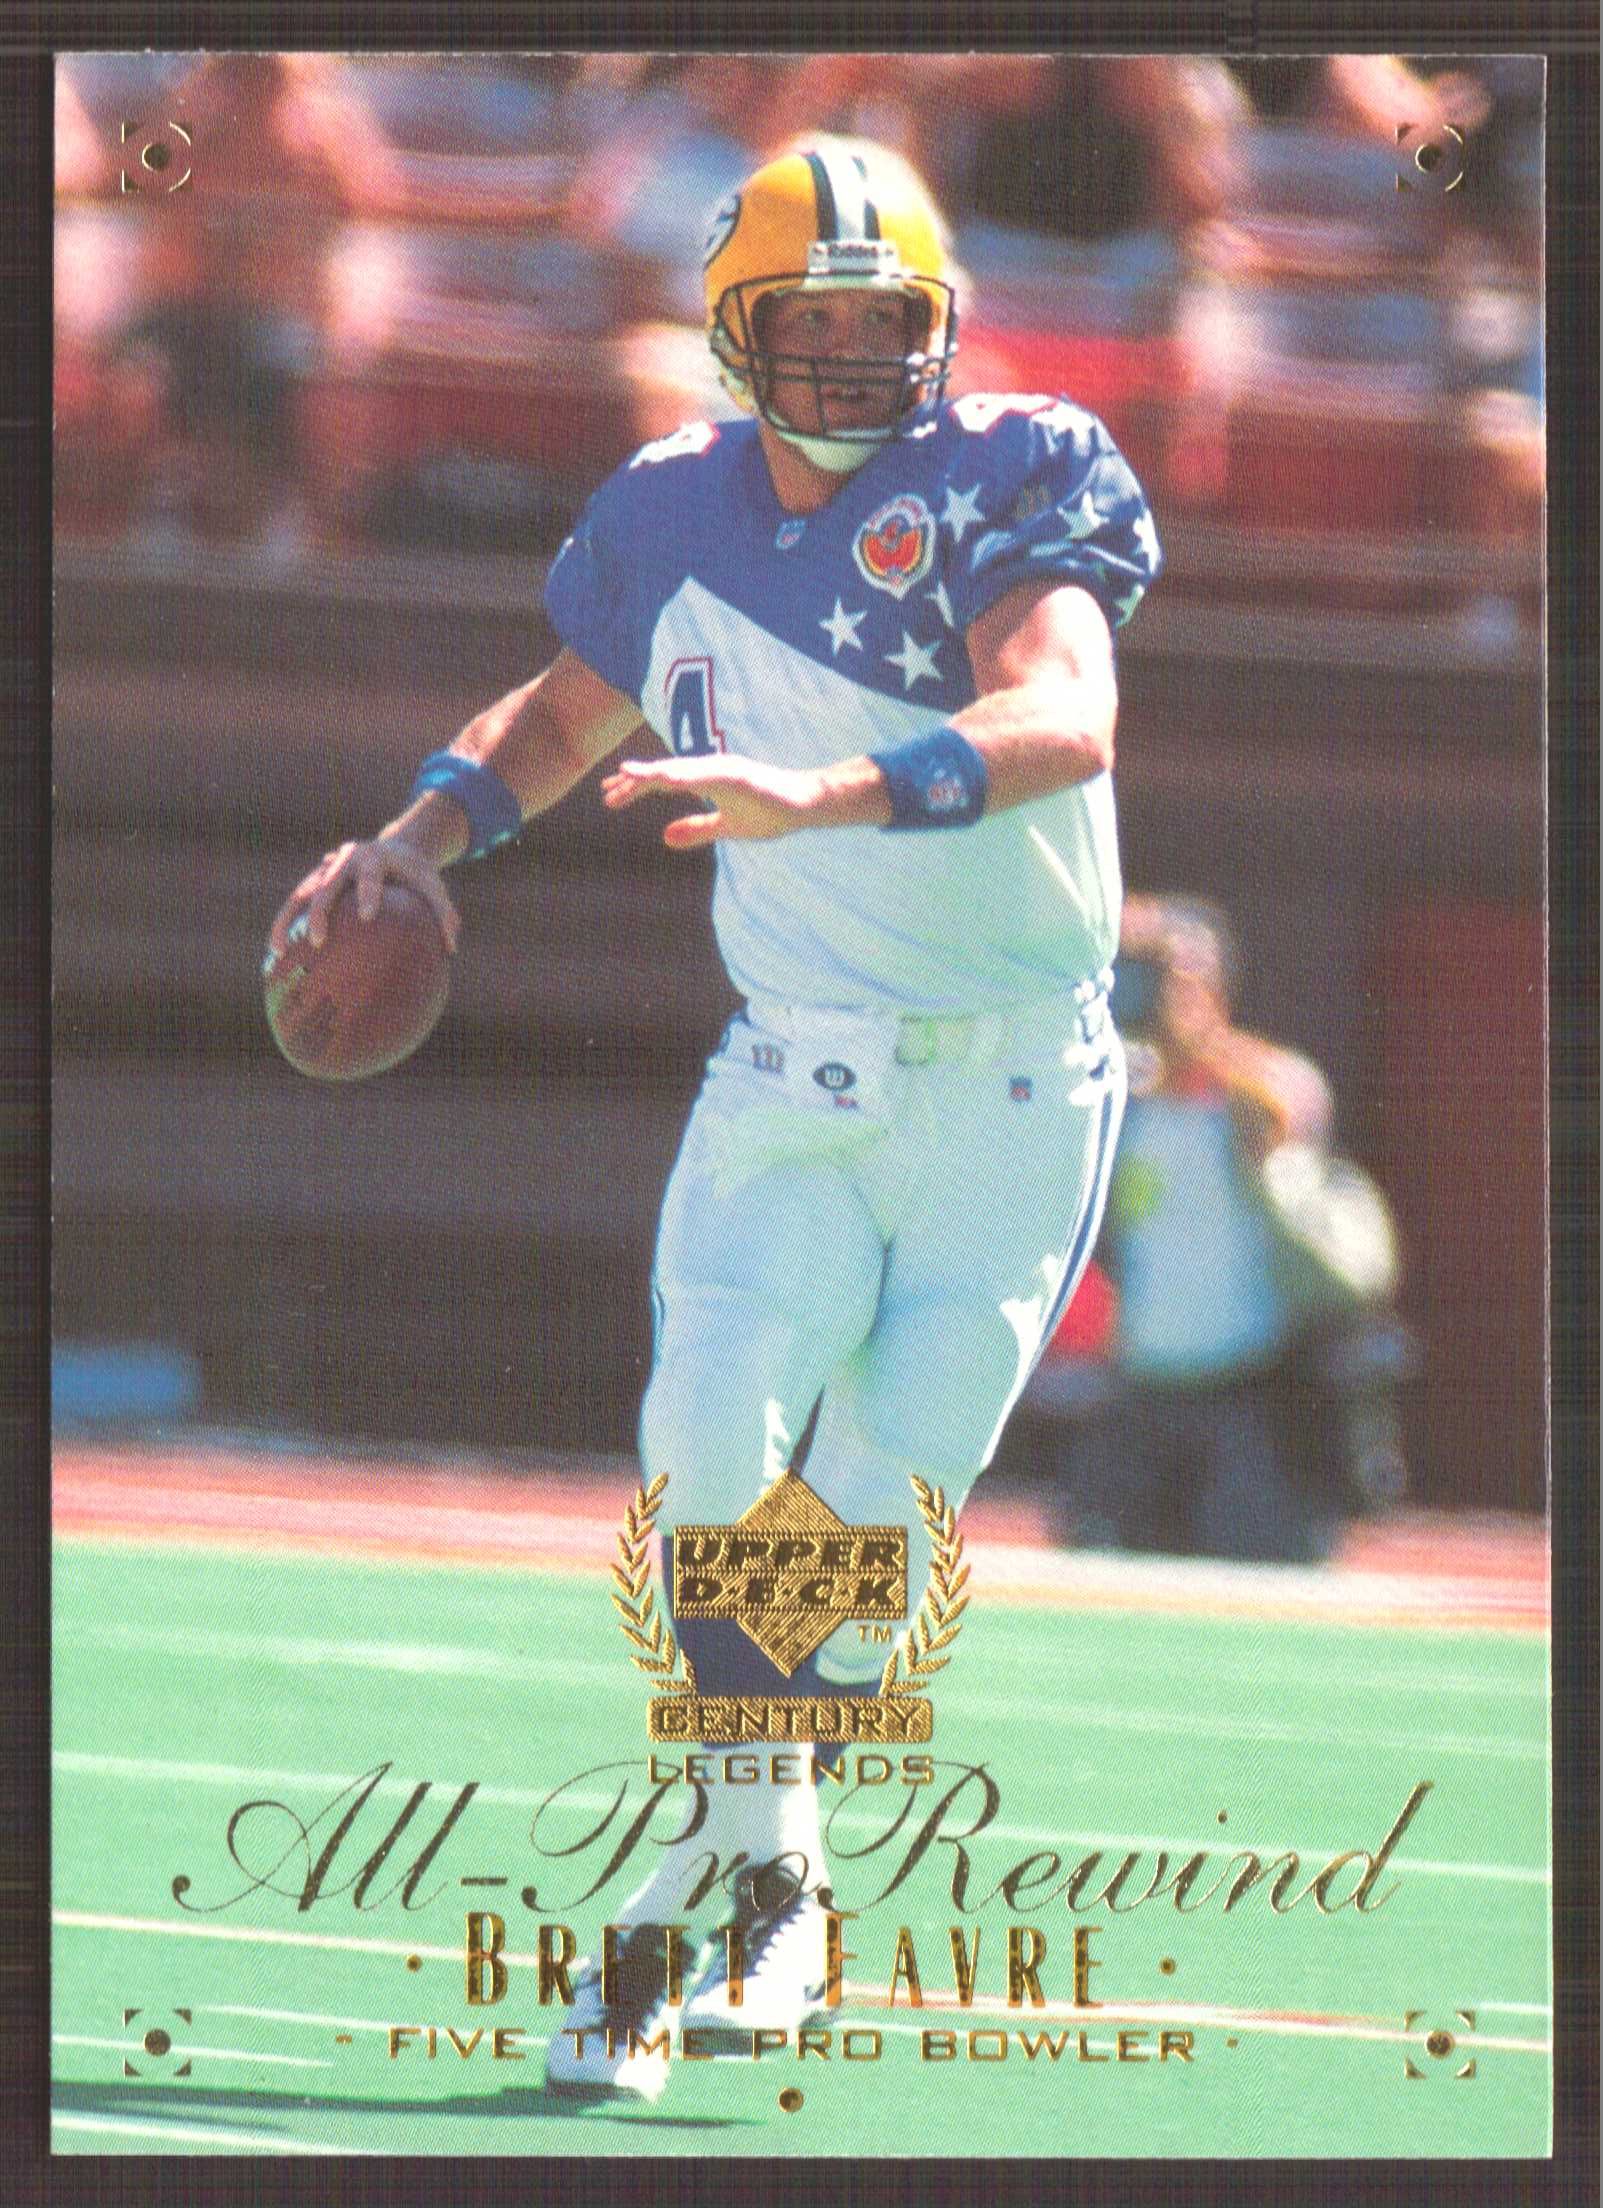 1999 Upper Deck Century Legends #101 Brett Favre APR